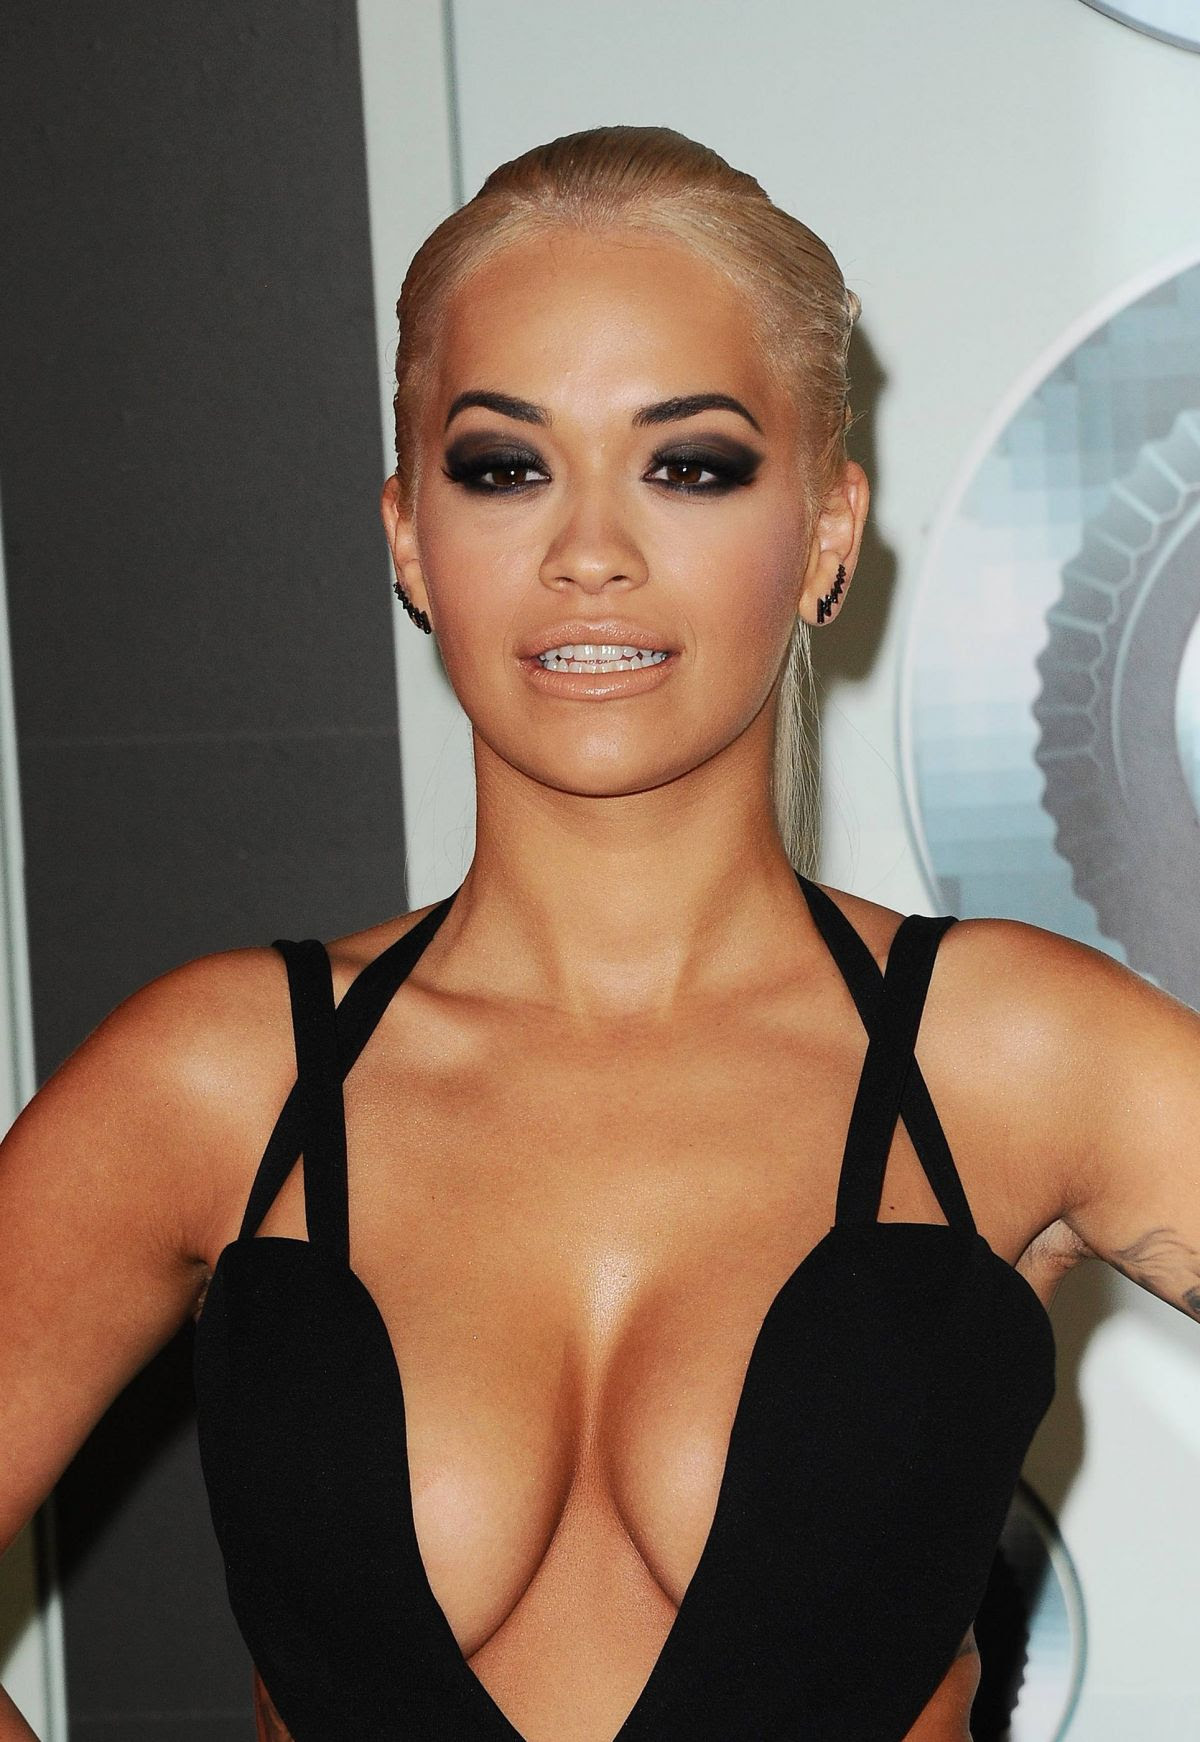 http://www.celebzz.com/wp-content/uploads/2015/08/rita-ora-at-2015-mtv-video-music-awards-_19.jpg